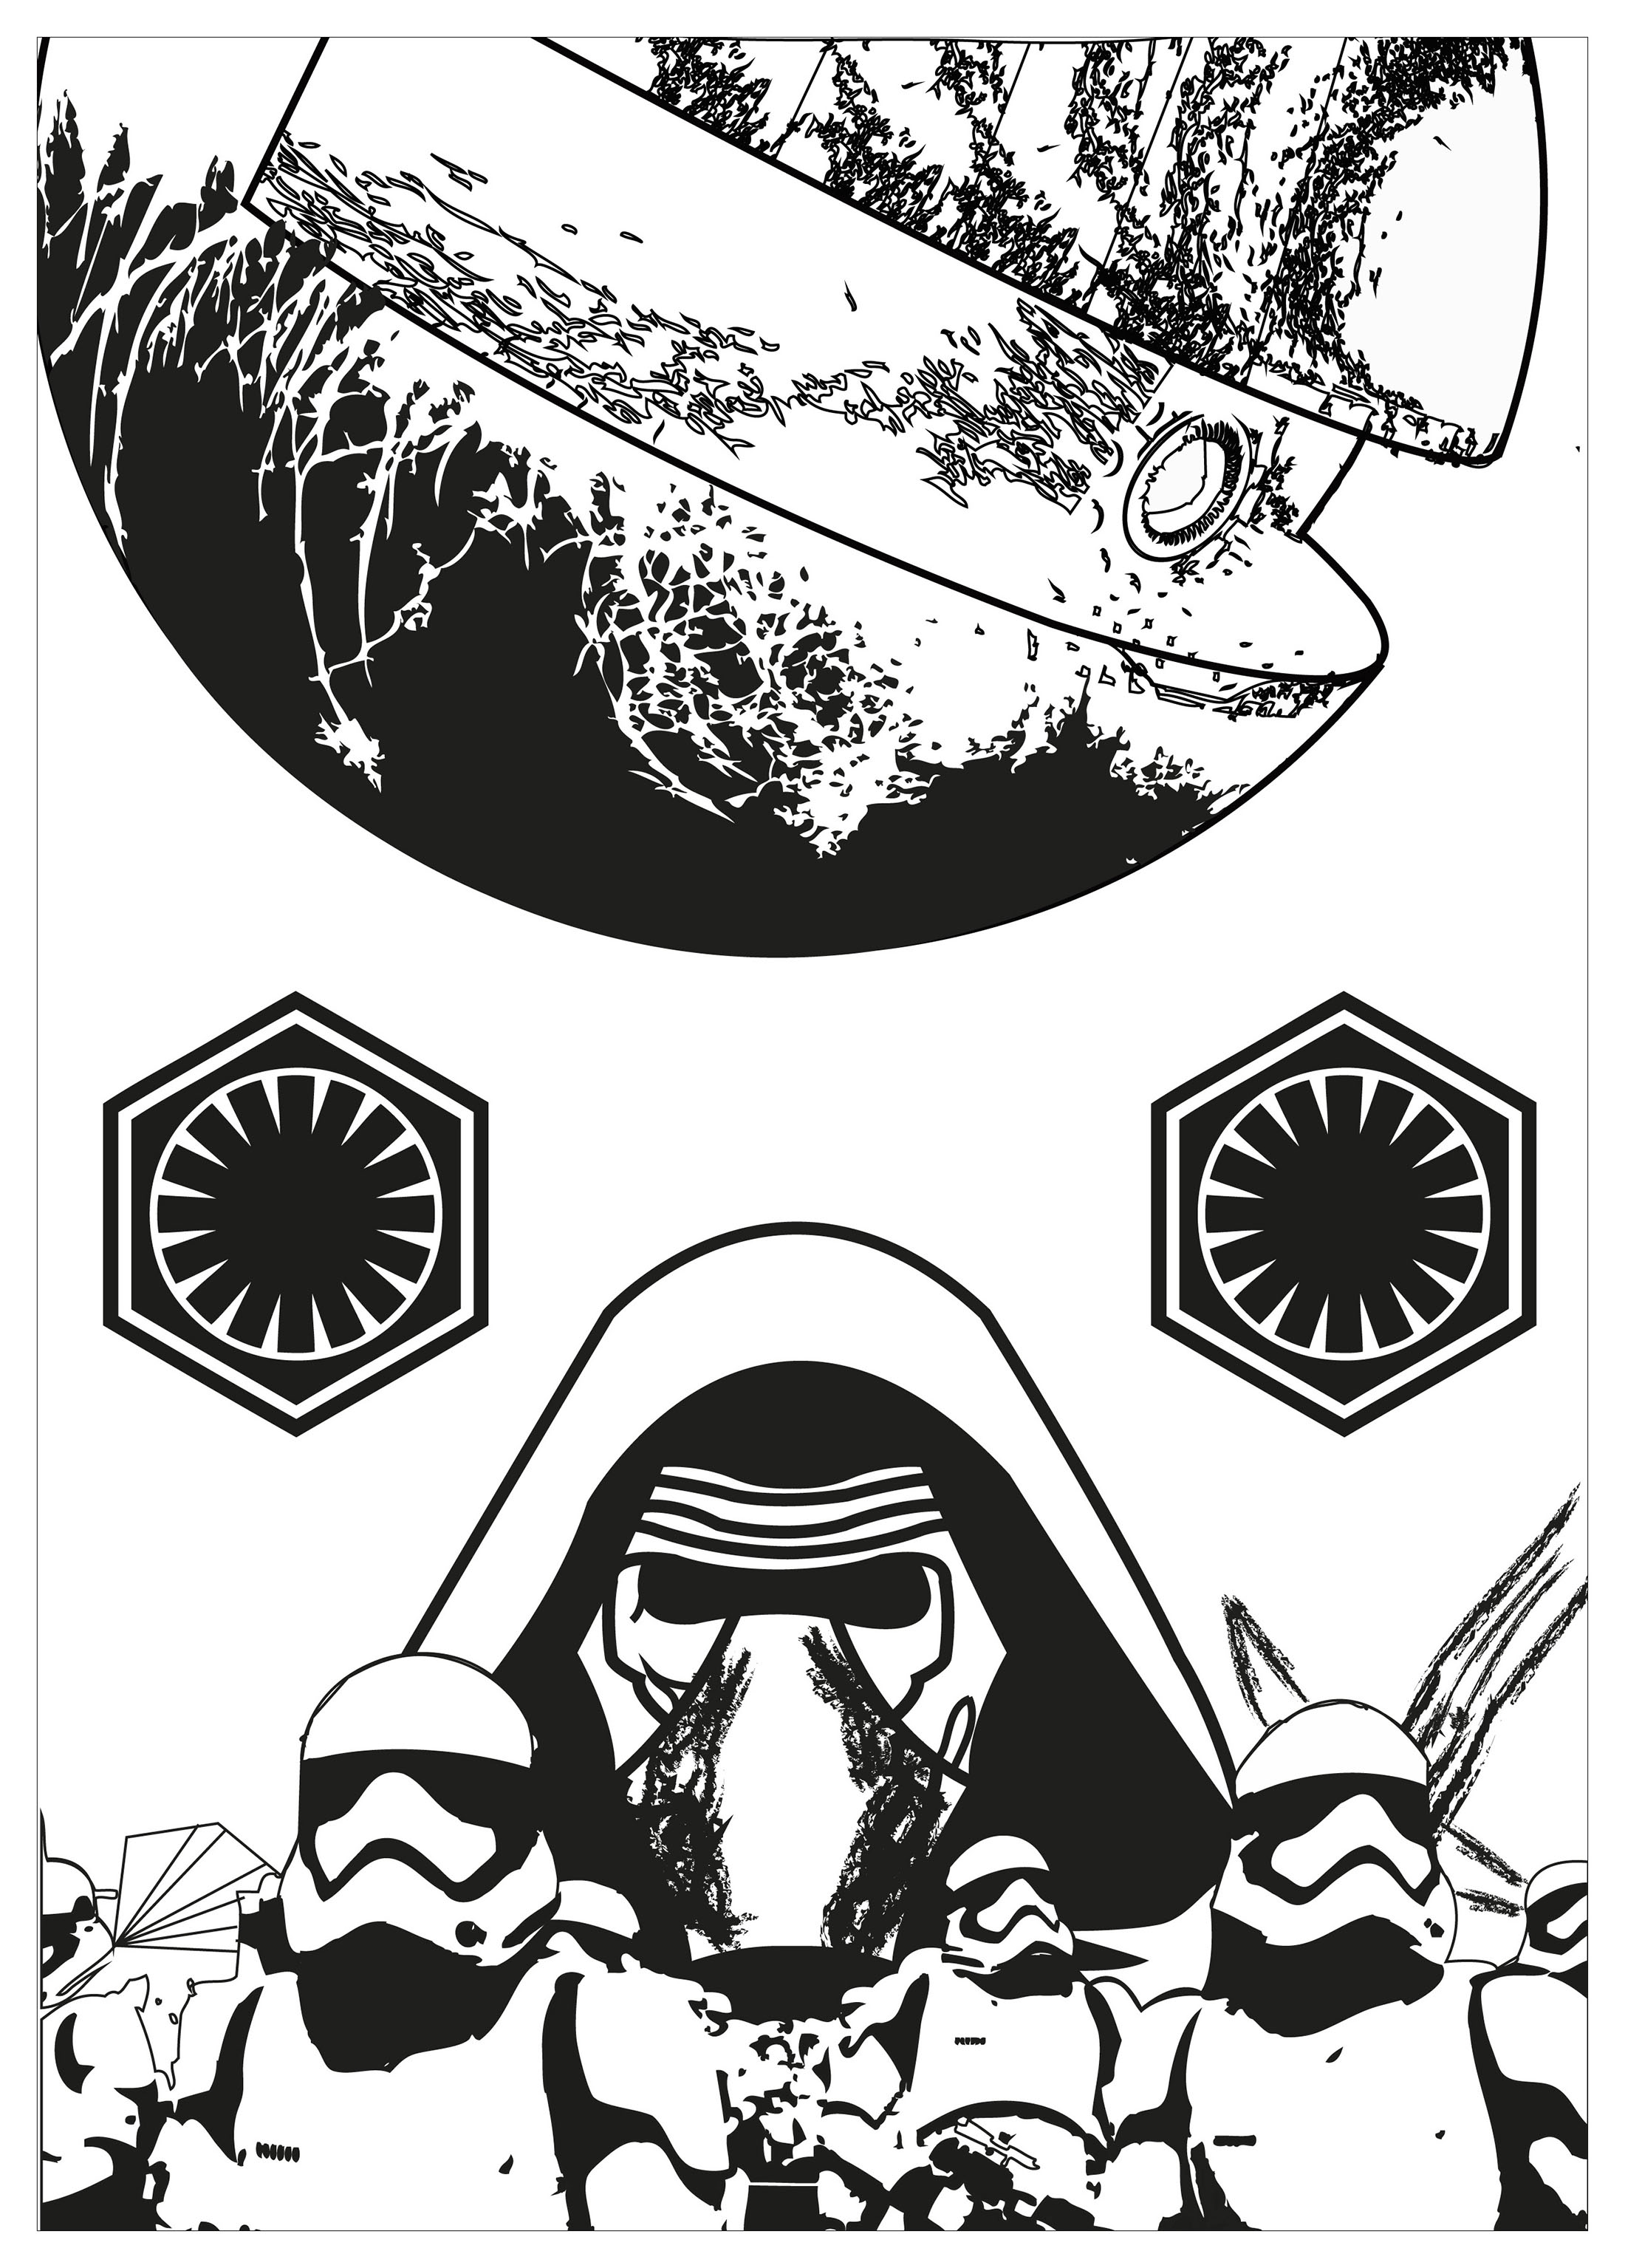 Death Star Coloring Page Unique Star Wars Kylo Ren  Movies  Coloring Pages For Adults  Justcolor Design Decoration